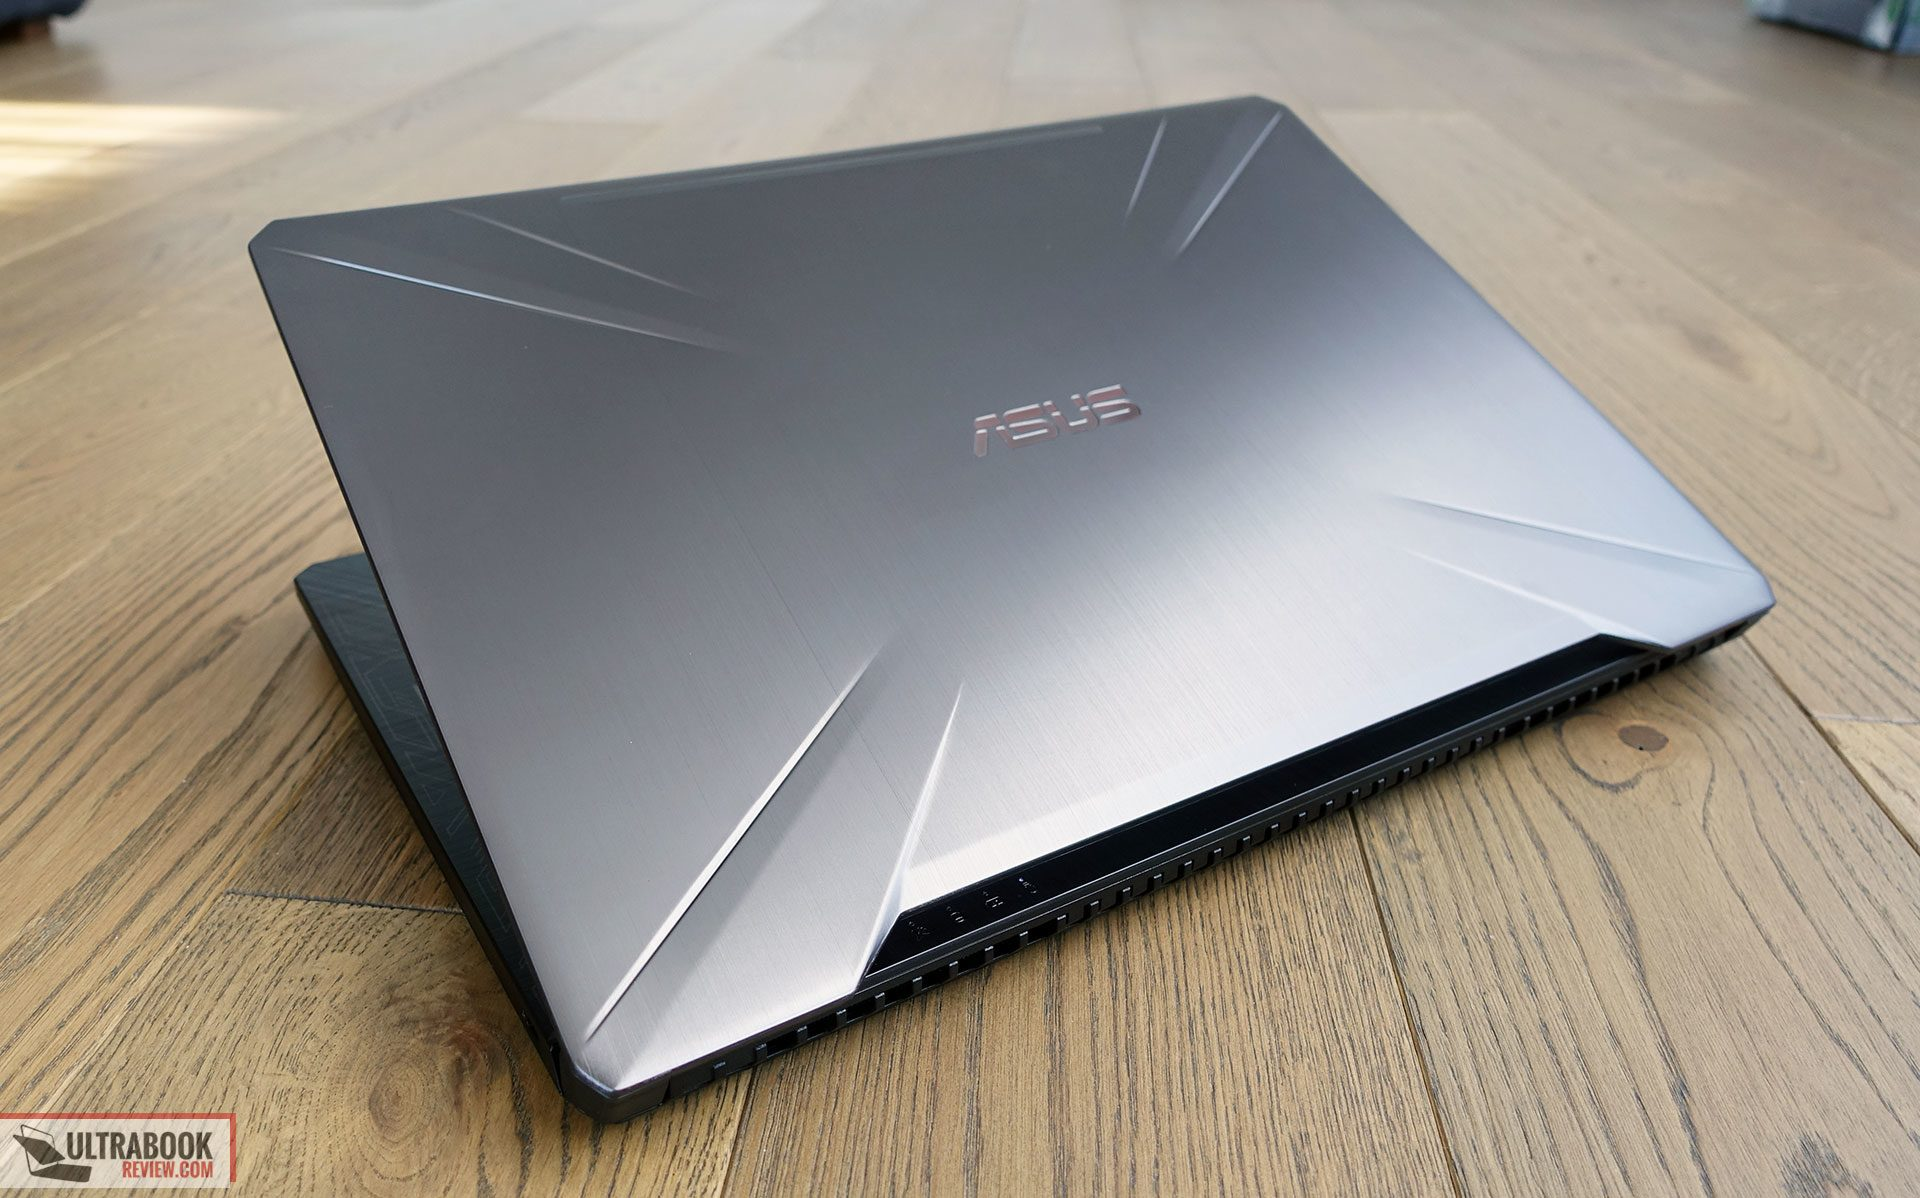 Asus TUF FX504 review (FX504 GE - i7-8750H, GTX 1050 Ti